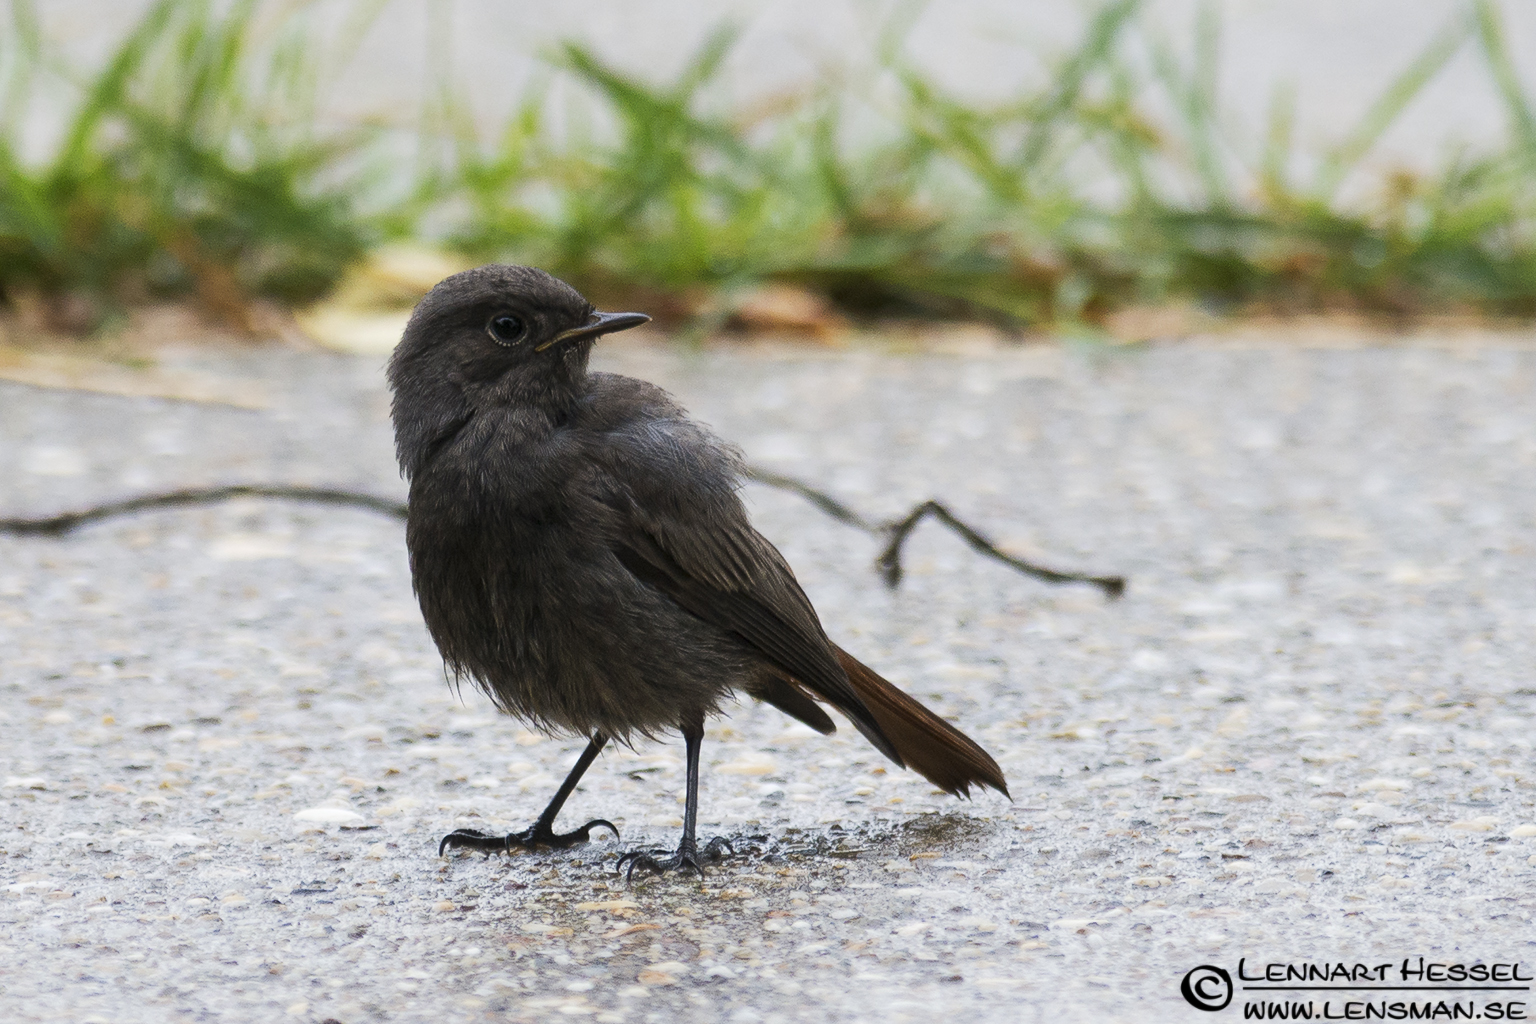 Black Redstart in Hungary